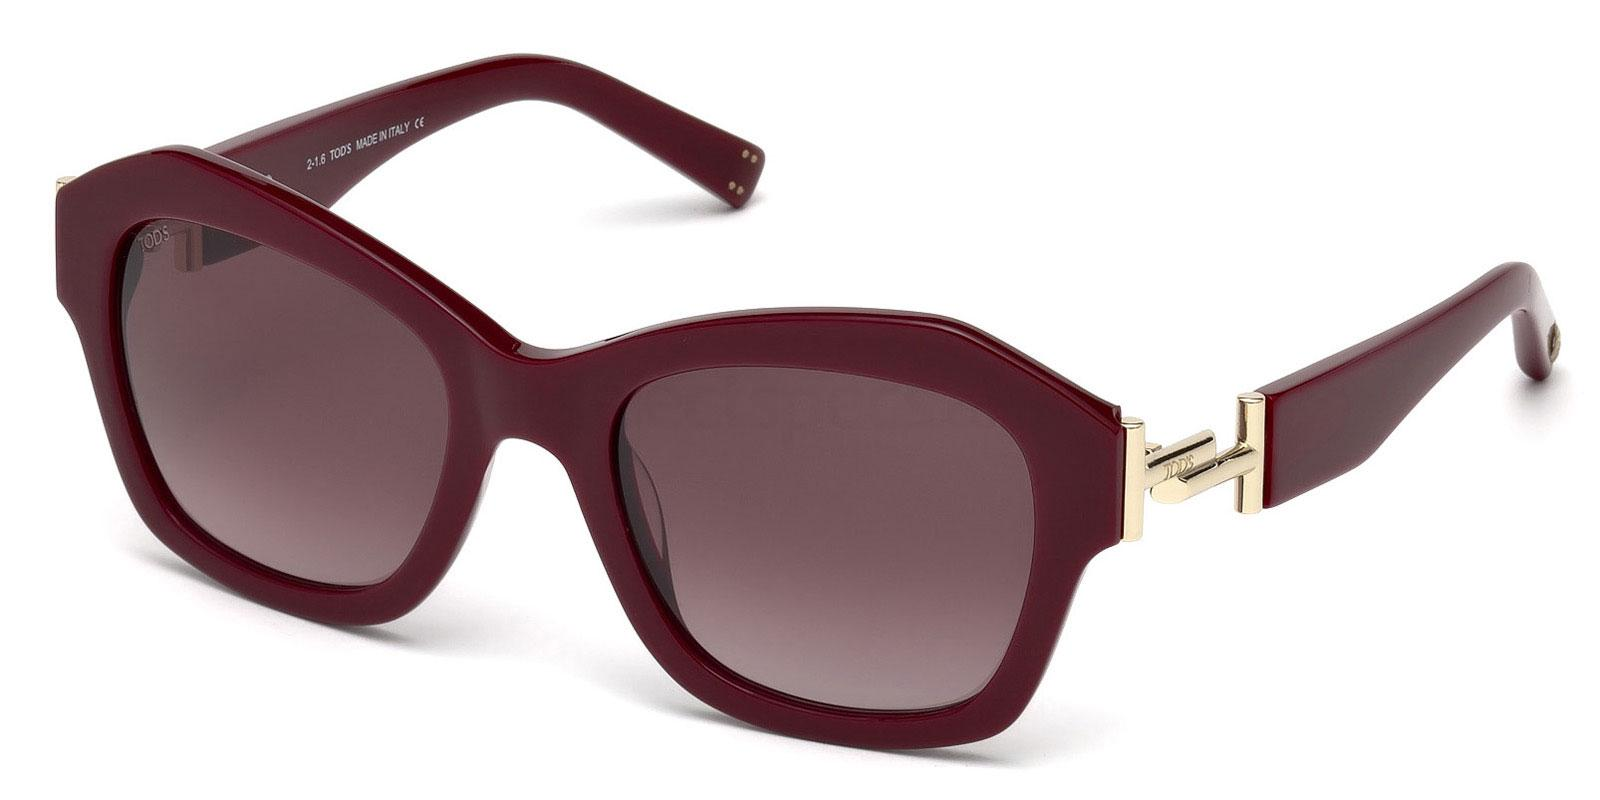 69T TO0195 Sunglasses, TODS